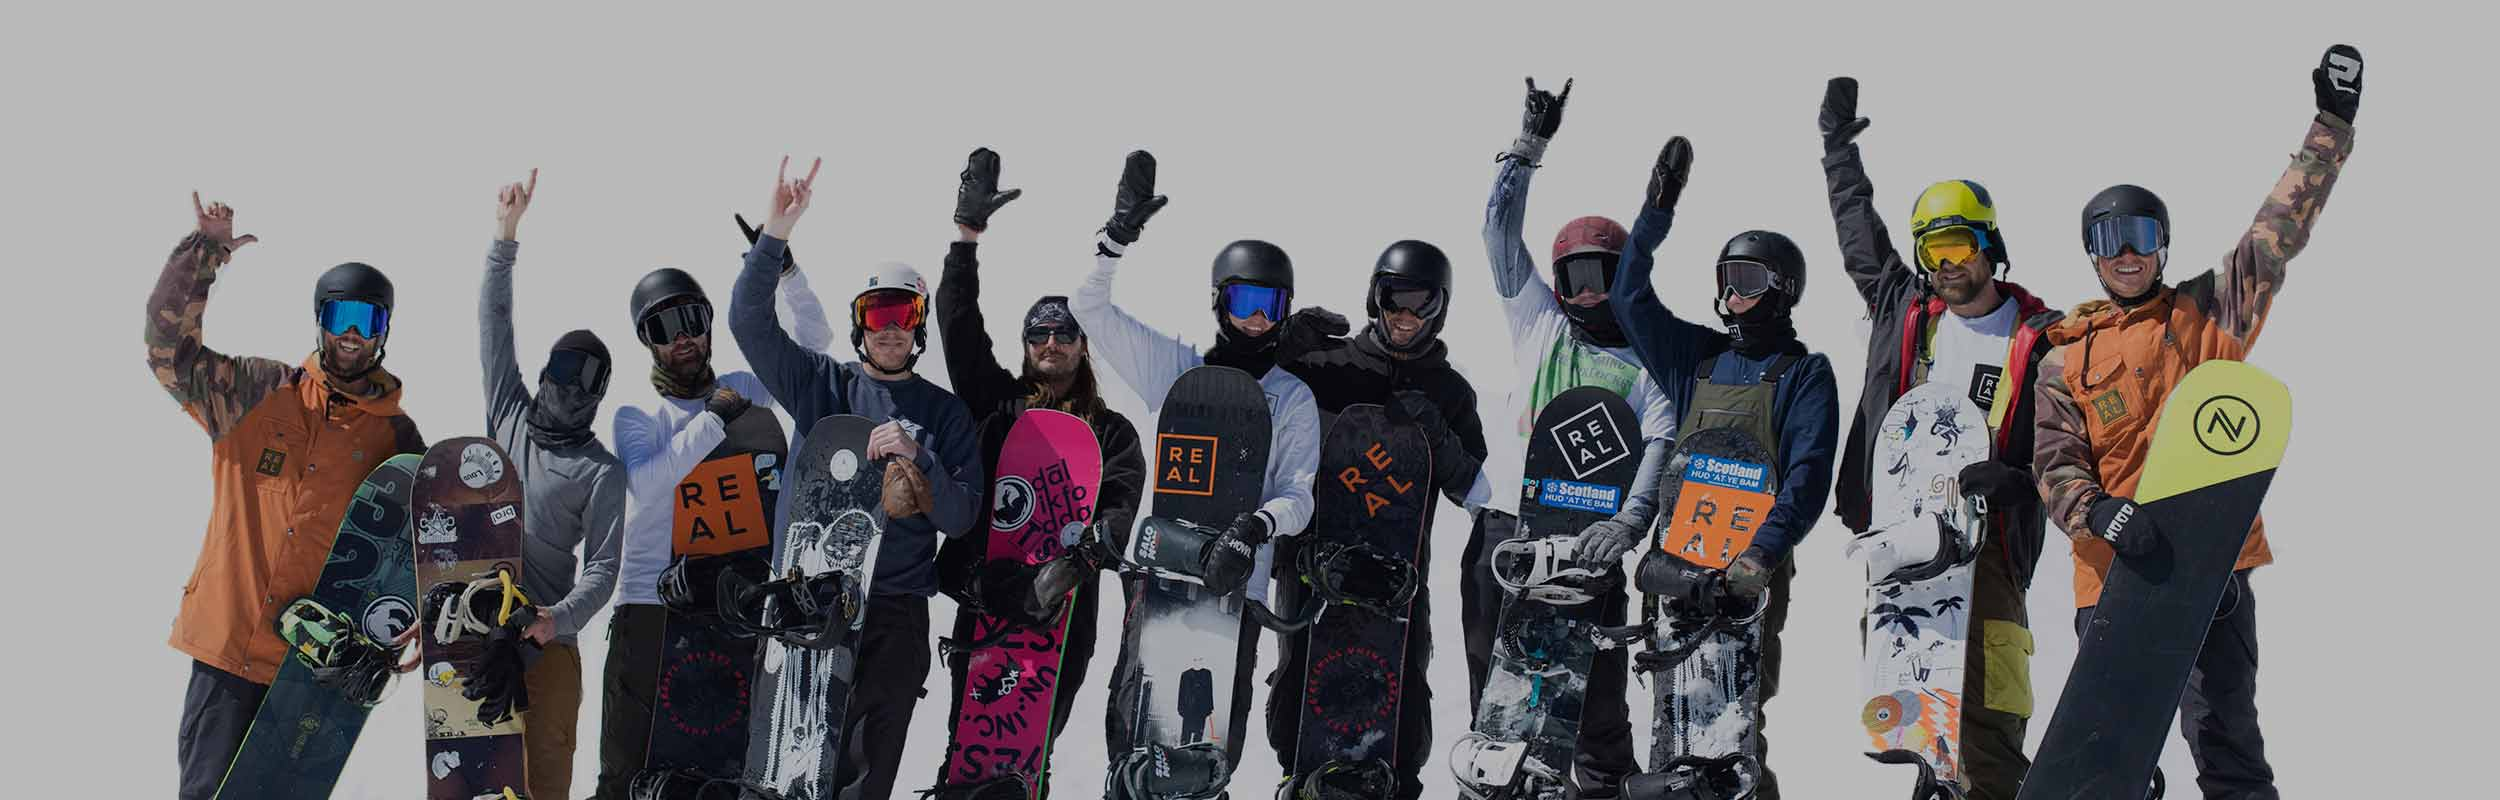 Winter snowboard camp for adults in morzine